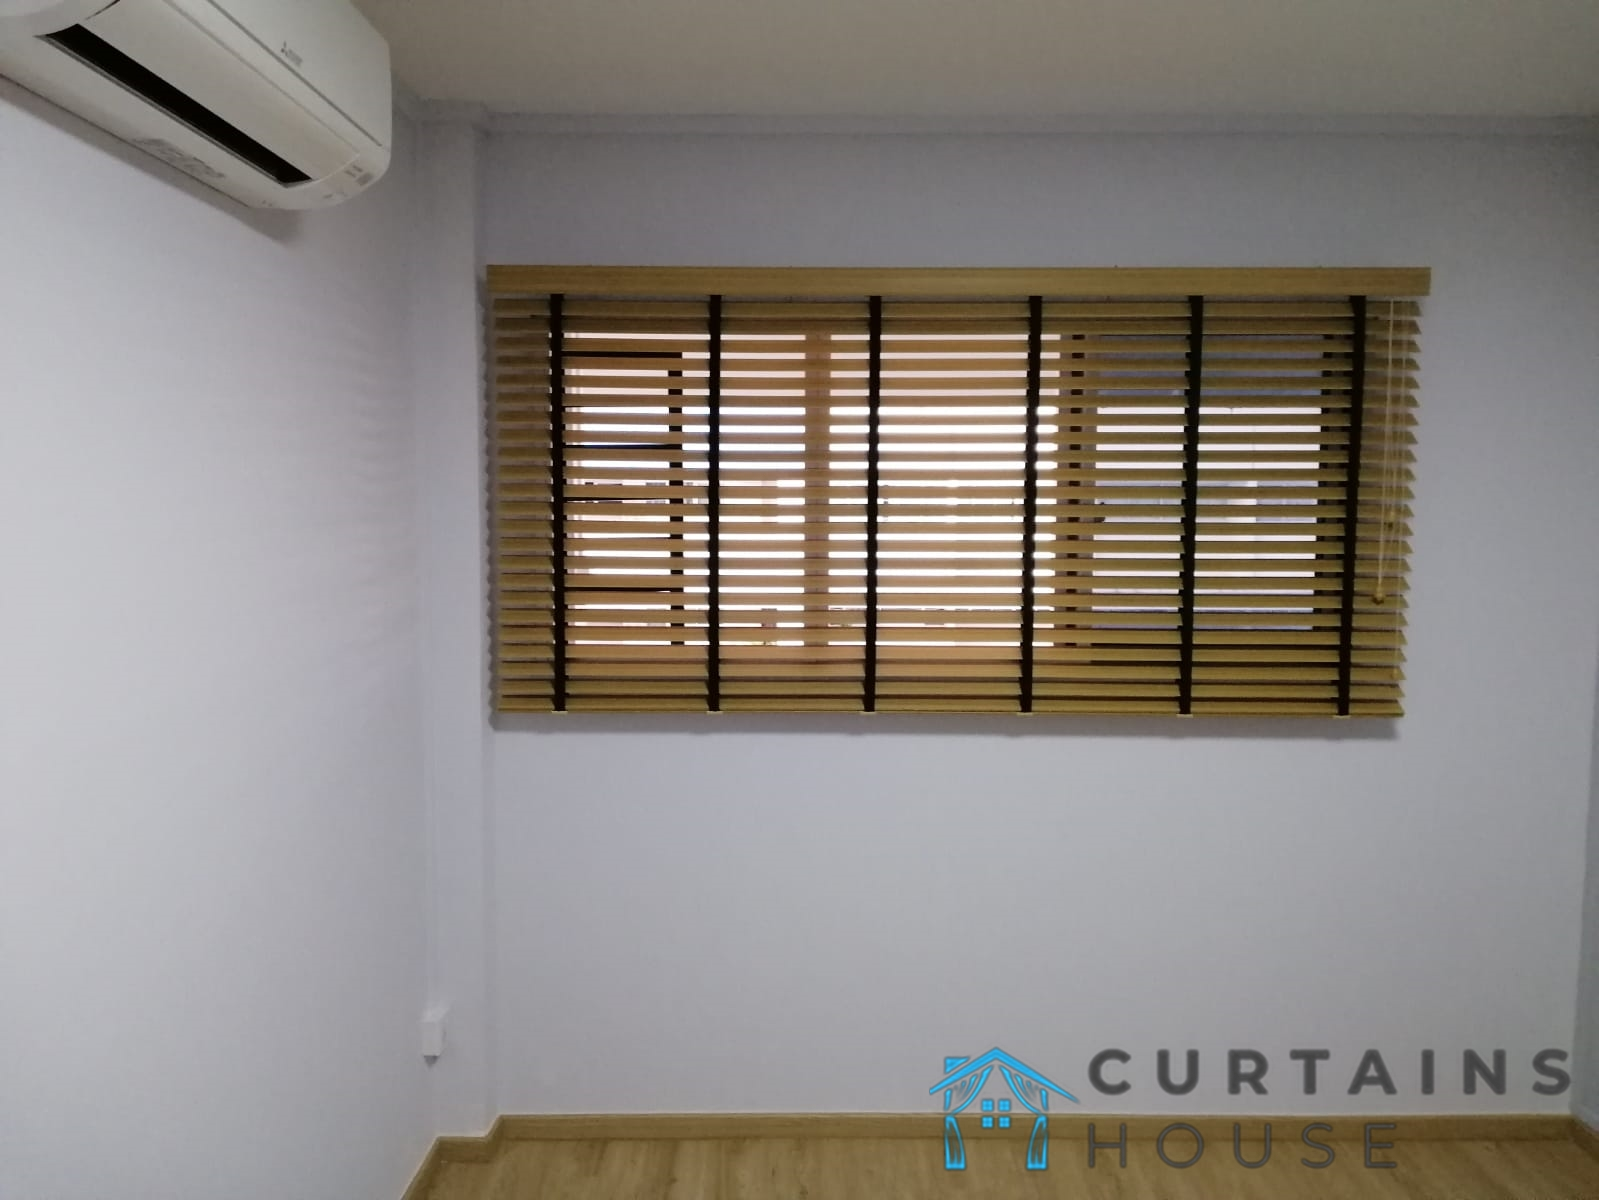 Venetian Blinds Wooden Blinds Installation Curtains House Singapore HDB – Clementi